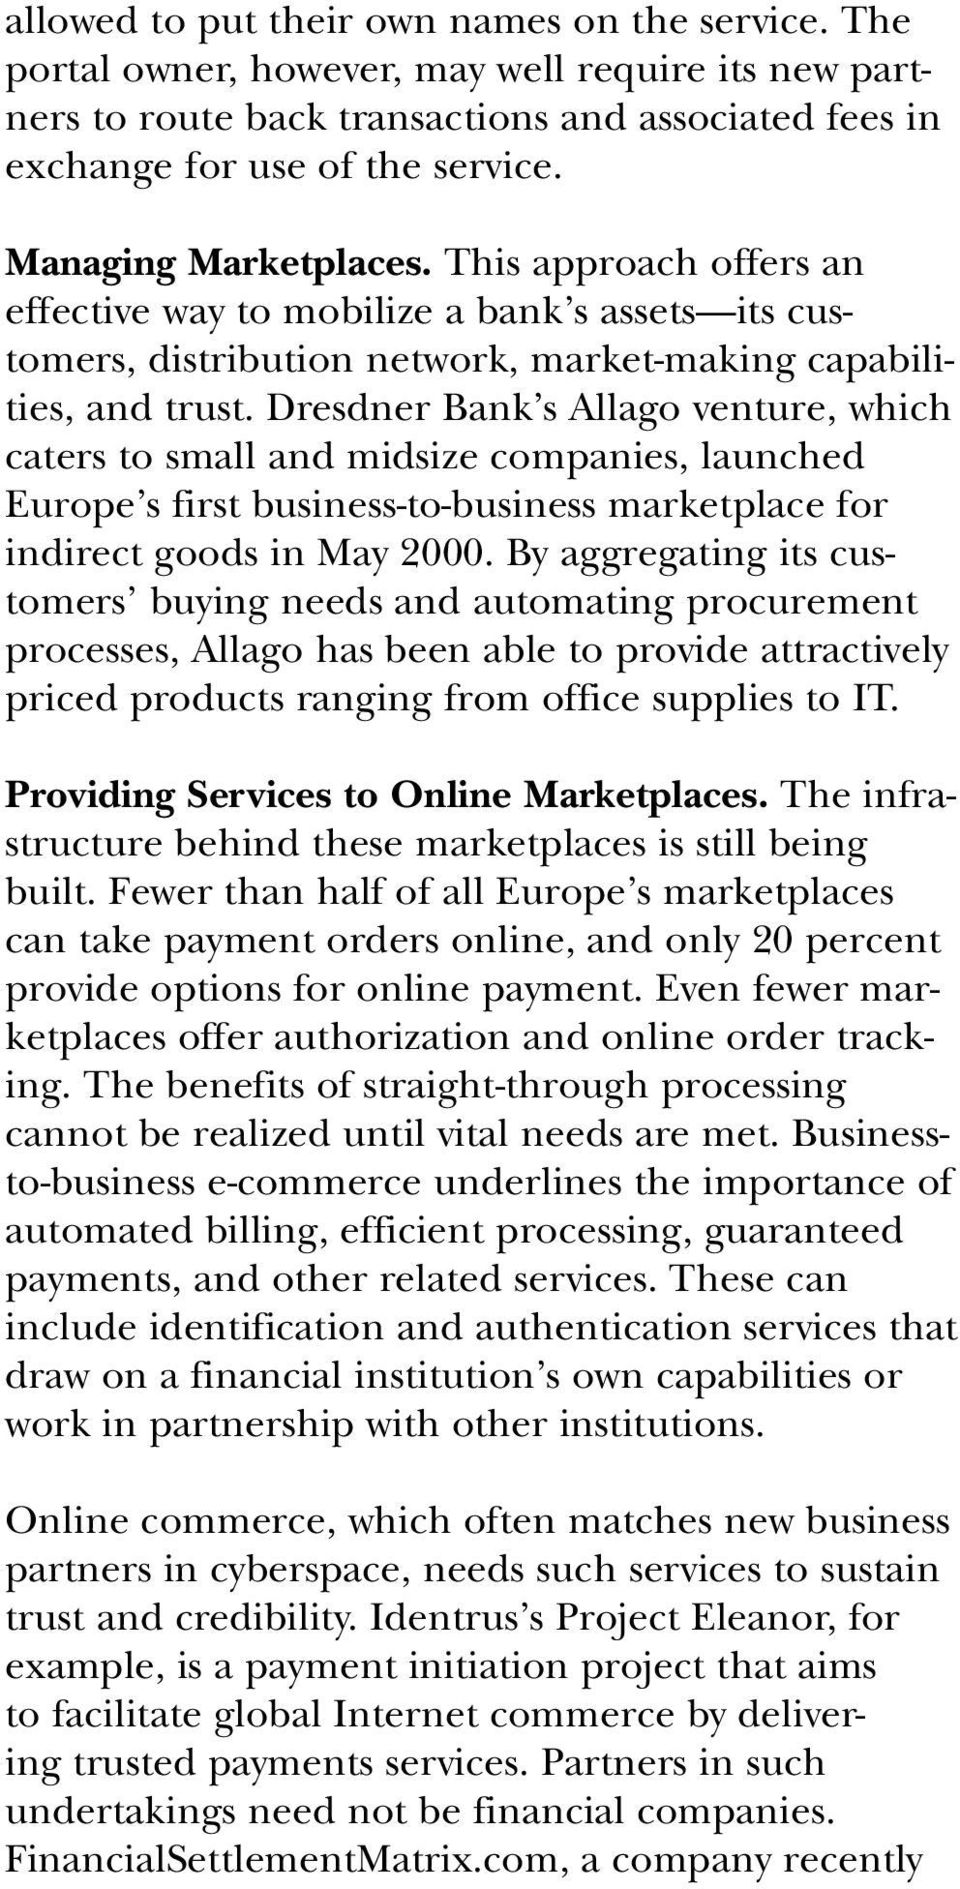 Dresdner Bank s Allago venture, which caters to small and midsize companies, launched Europe s first business-to-business marketplace for indirect goods in May 2000.